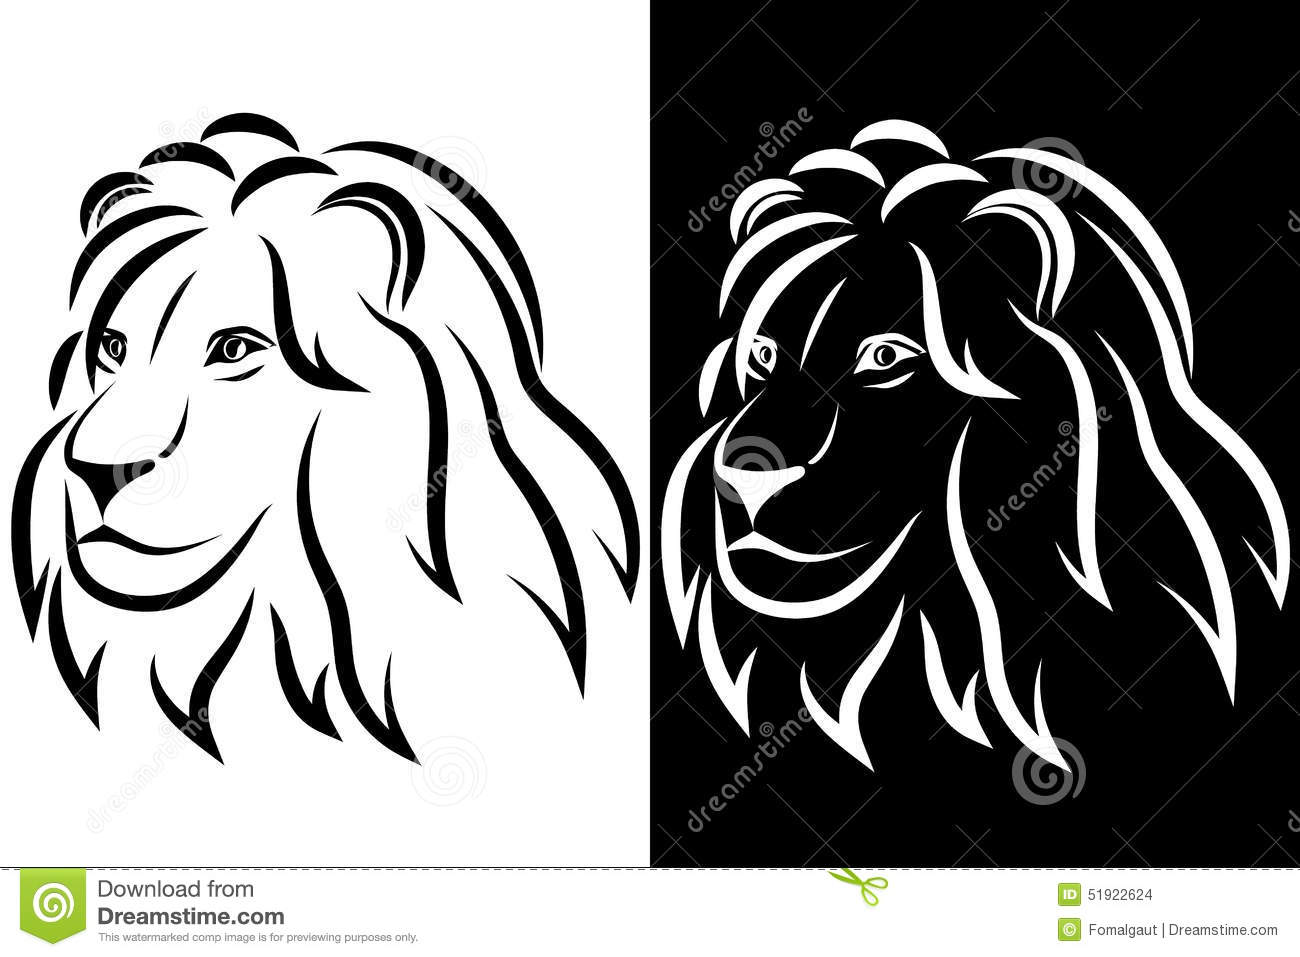 lion head black and white silhouette logo vector